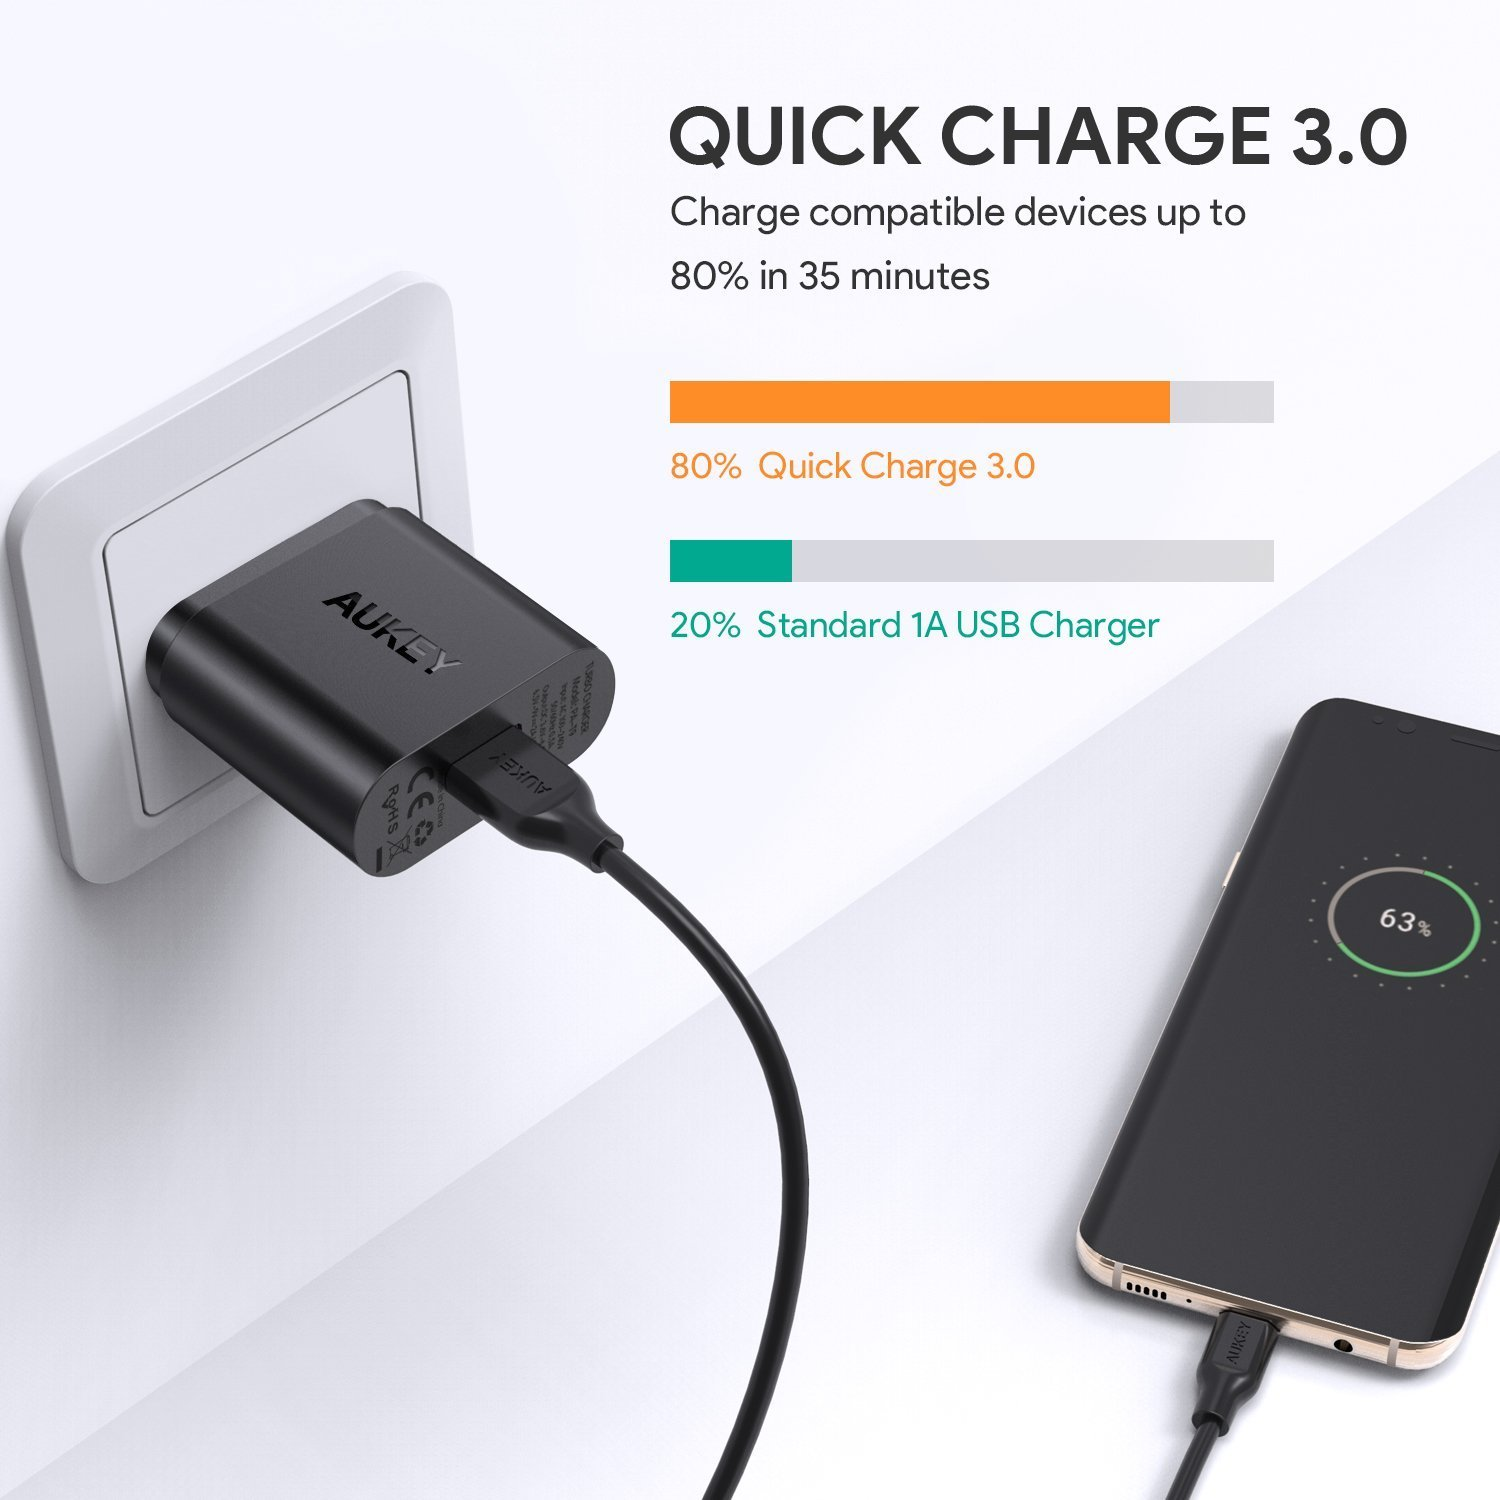 Anker Powerport 1 Quick Charge 30 Hitam Daftar Harga Terlengkap Wall Charger Usb C A2012311 Upgrade Aukey Travel Adapter 20